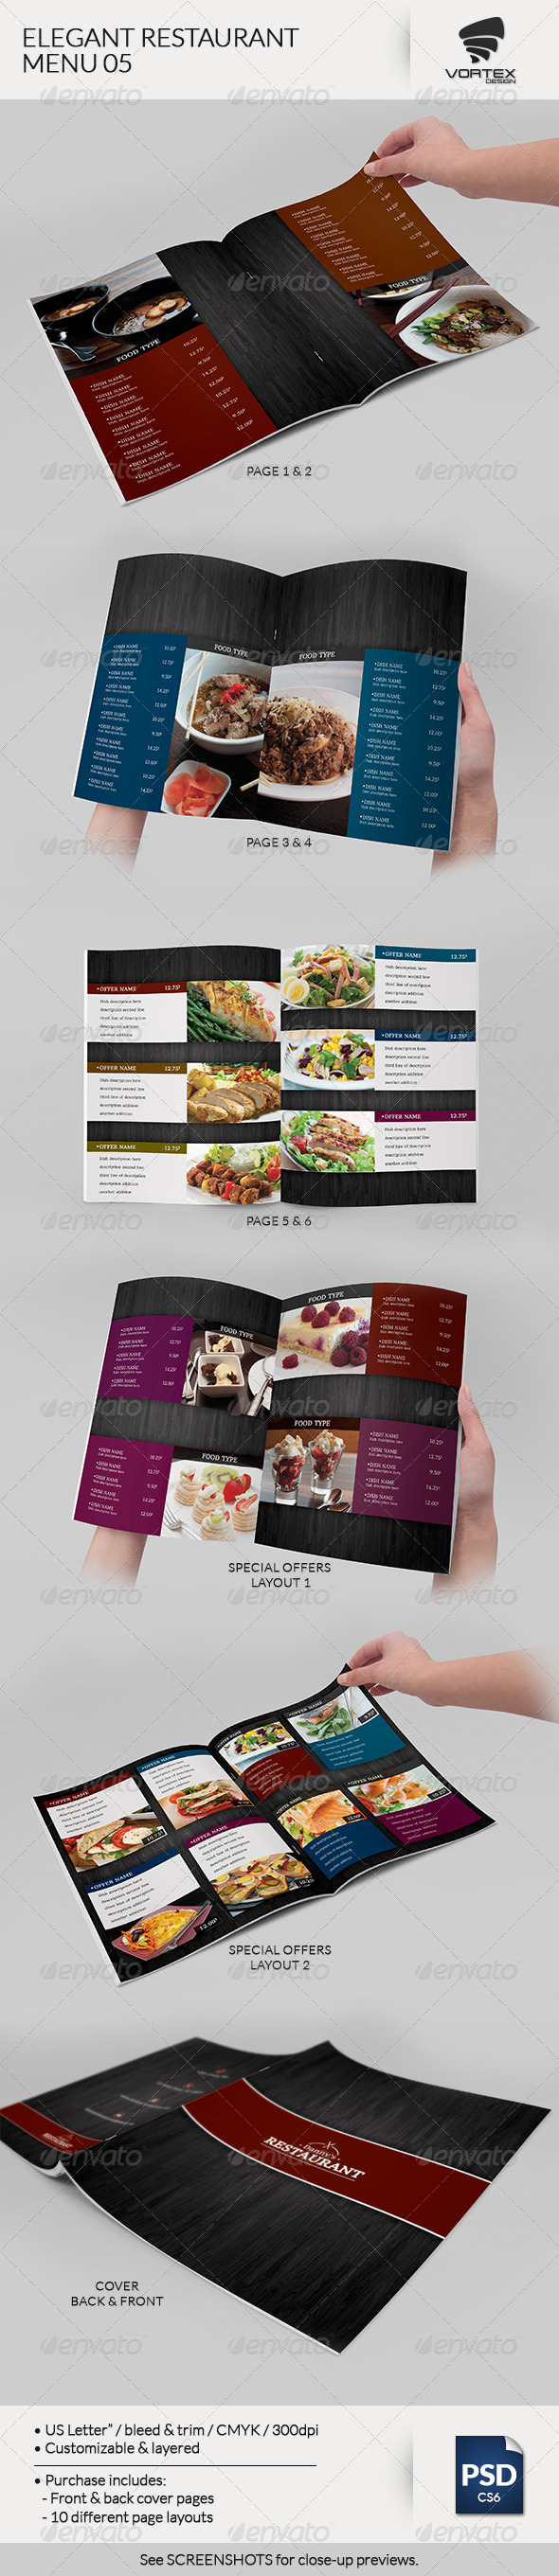 GraphicRiver Elegant Restaurant Menu 05 7533991